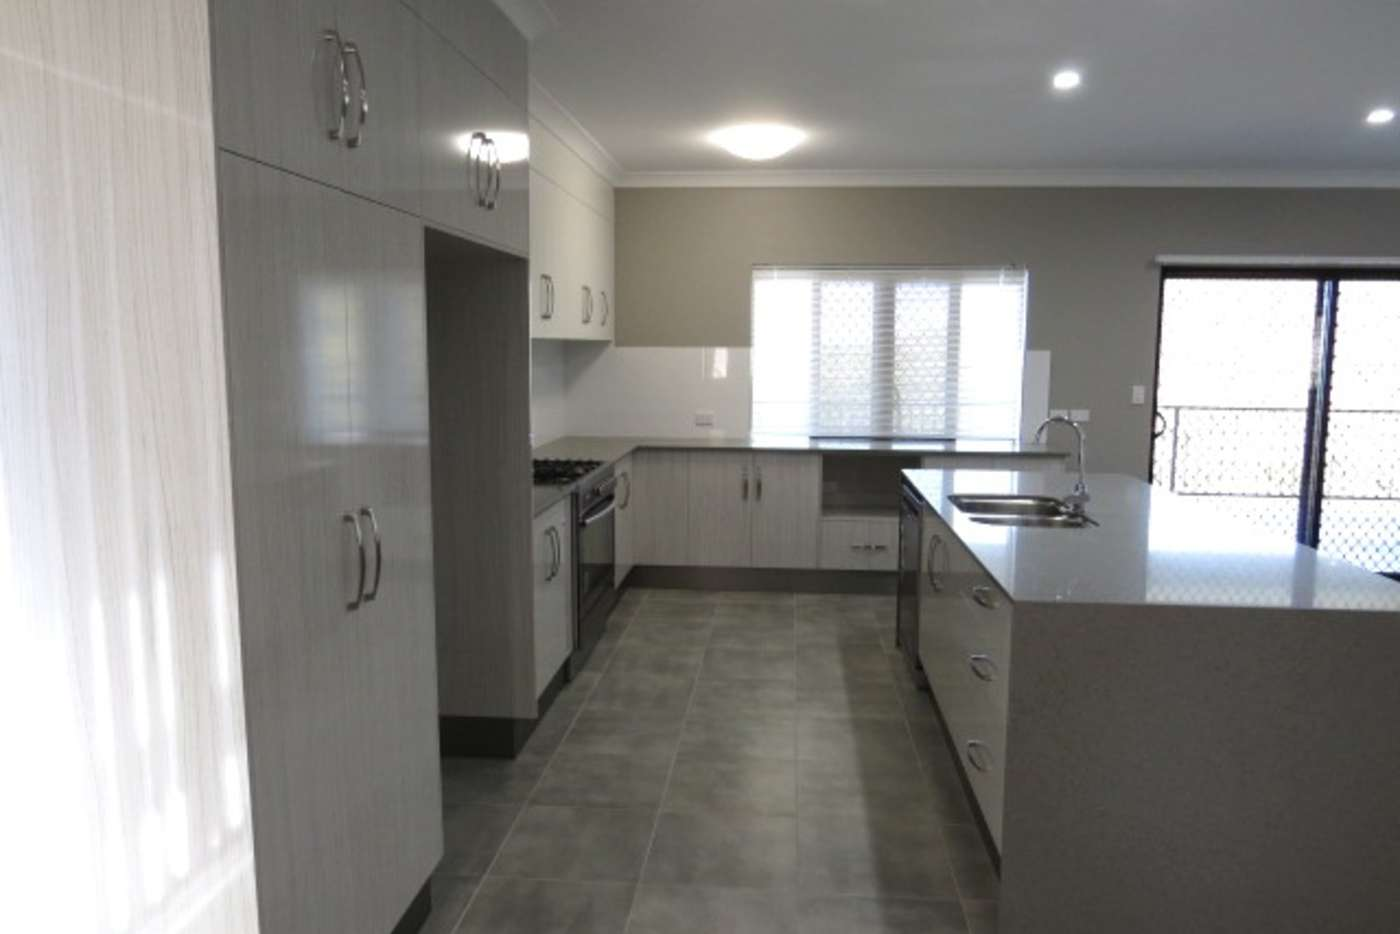 Sixth view of Homely house listing, 20 Grandview Terrace, Bowen QLD 4805